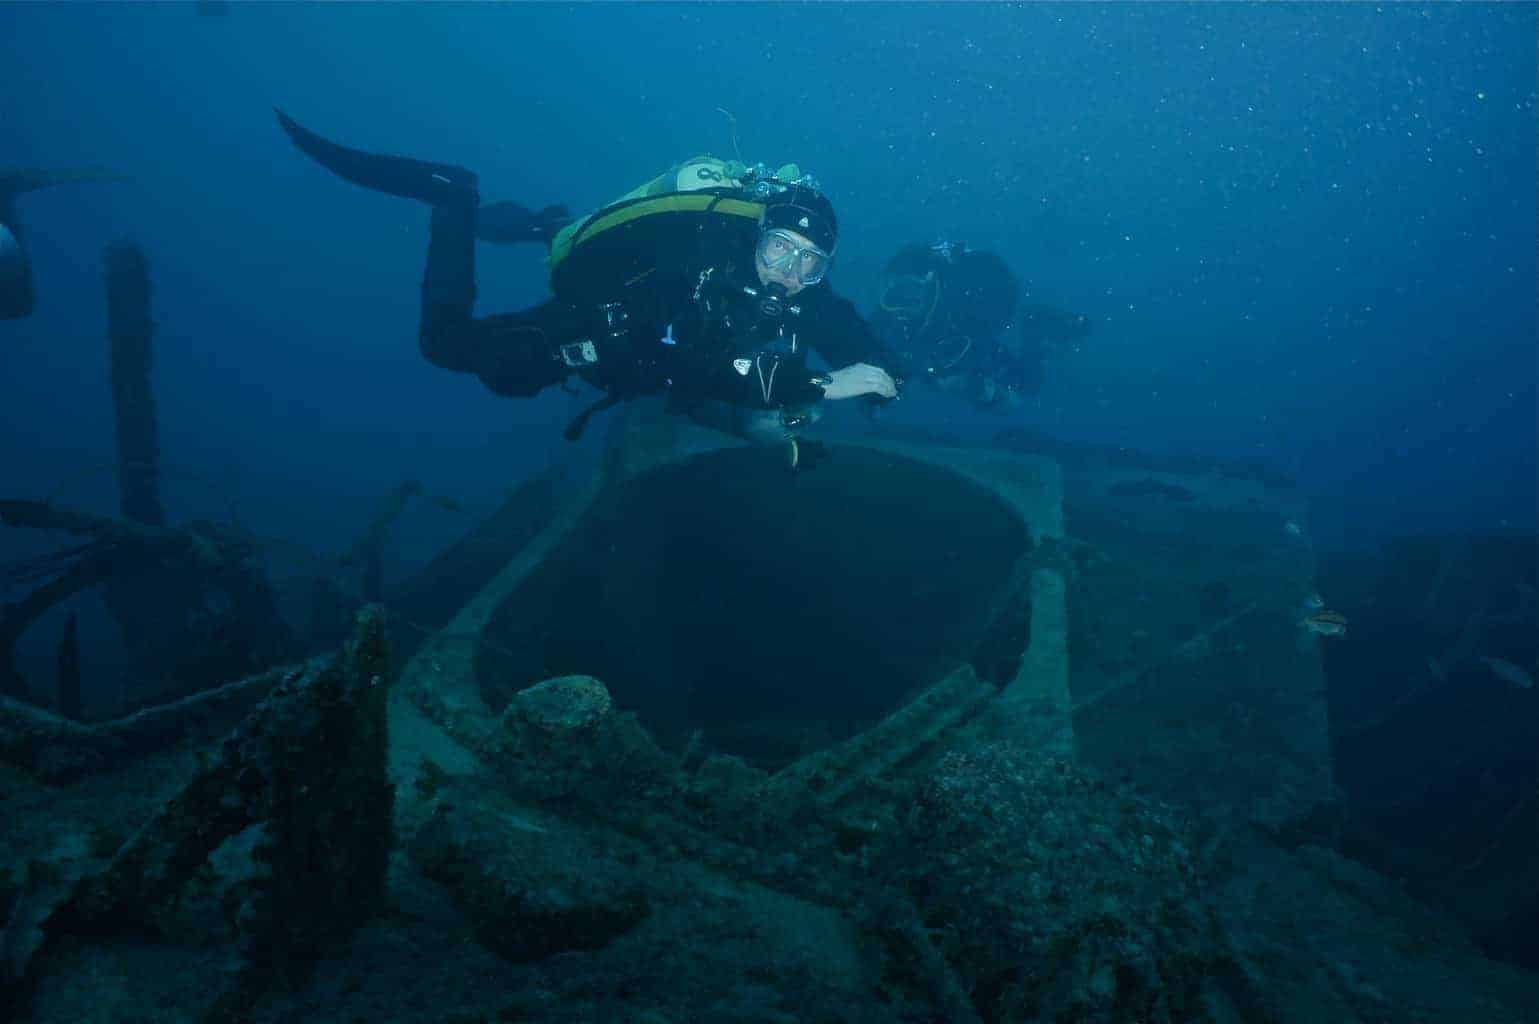 Are you ready to become a deep tech diver?